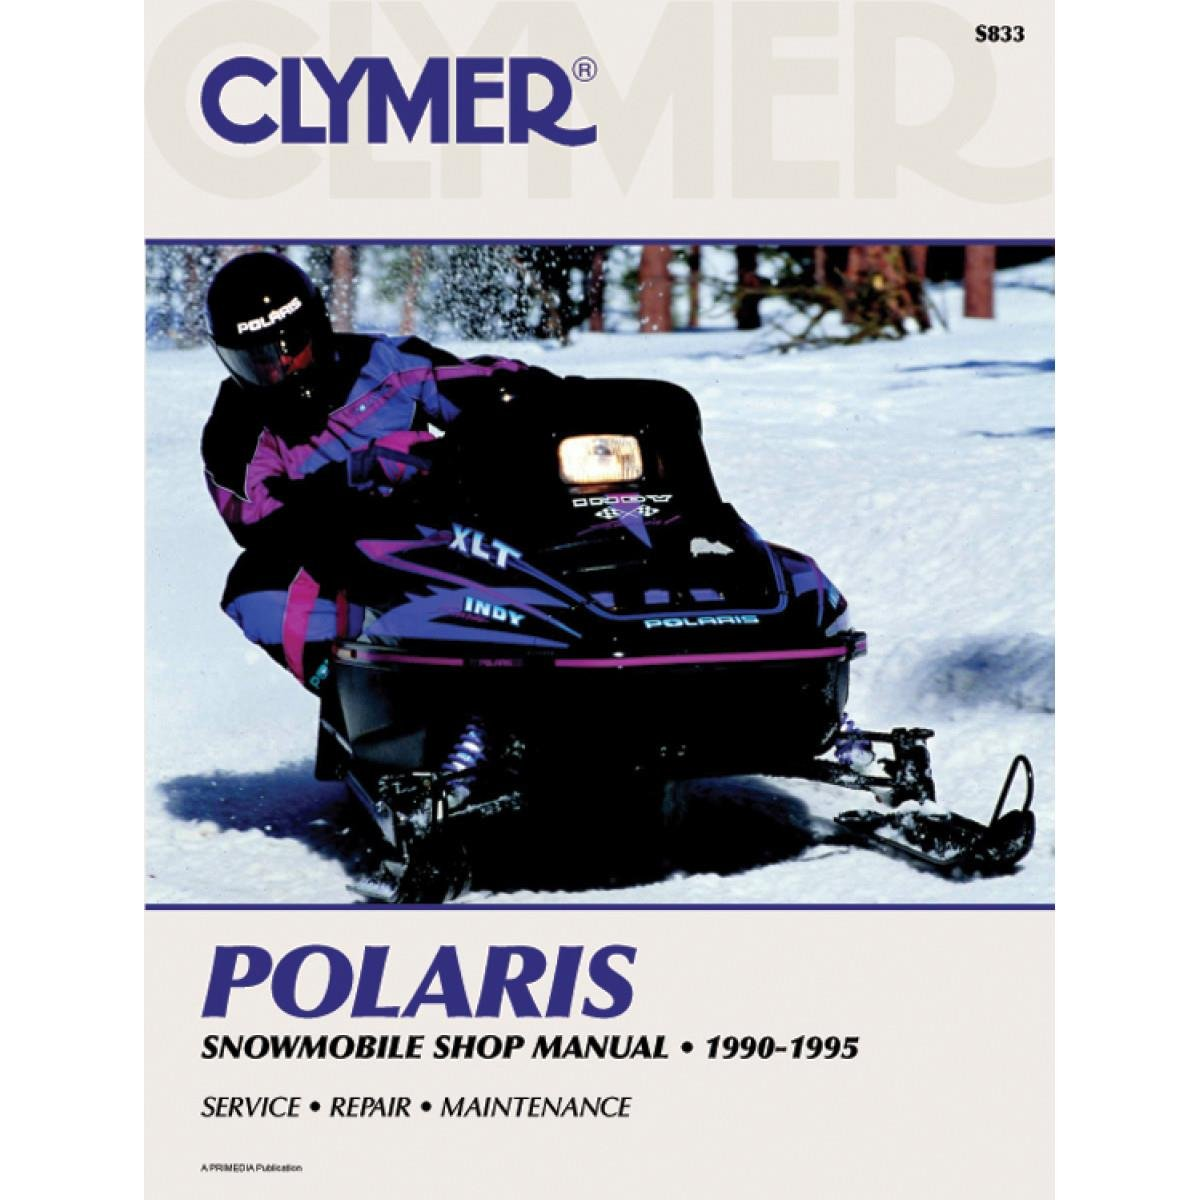 Clymer Polaris Snowmobile 1990 1995 53005 Wiring Diagram For 1991 Rxl Manufacturer Electronics